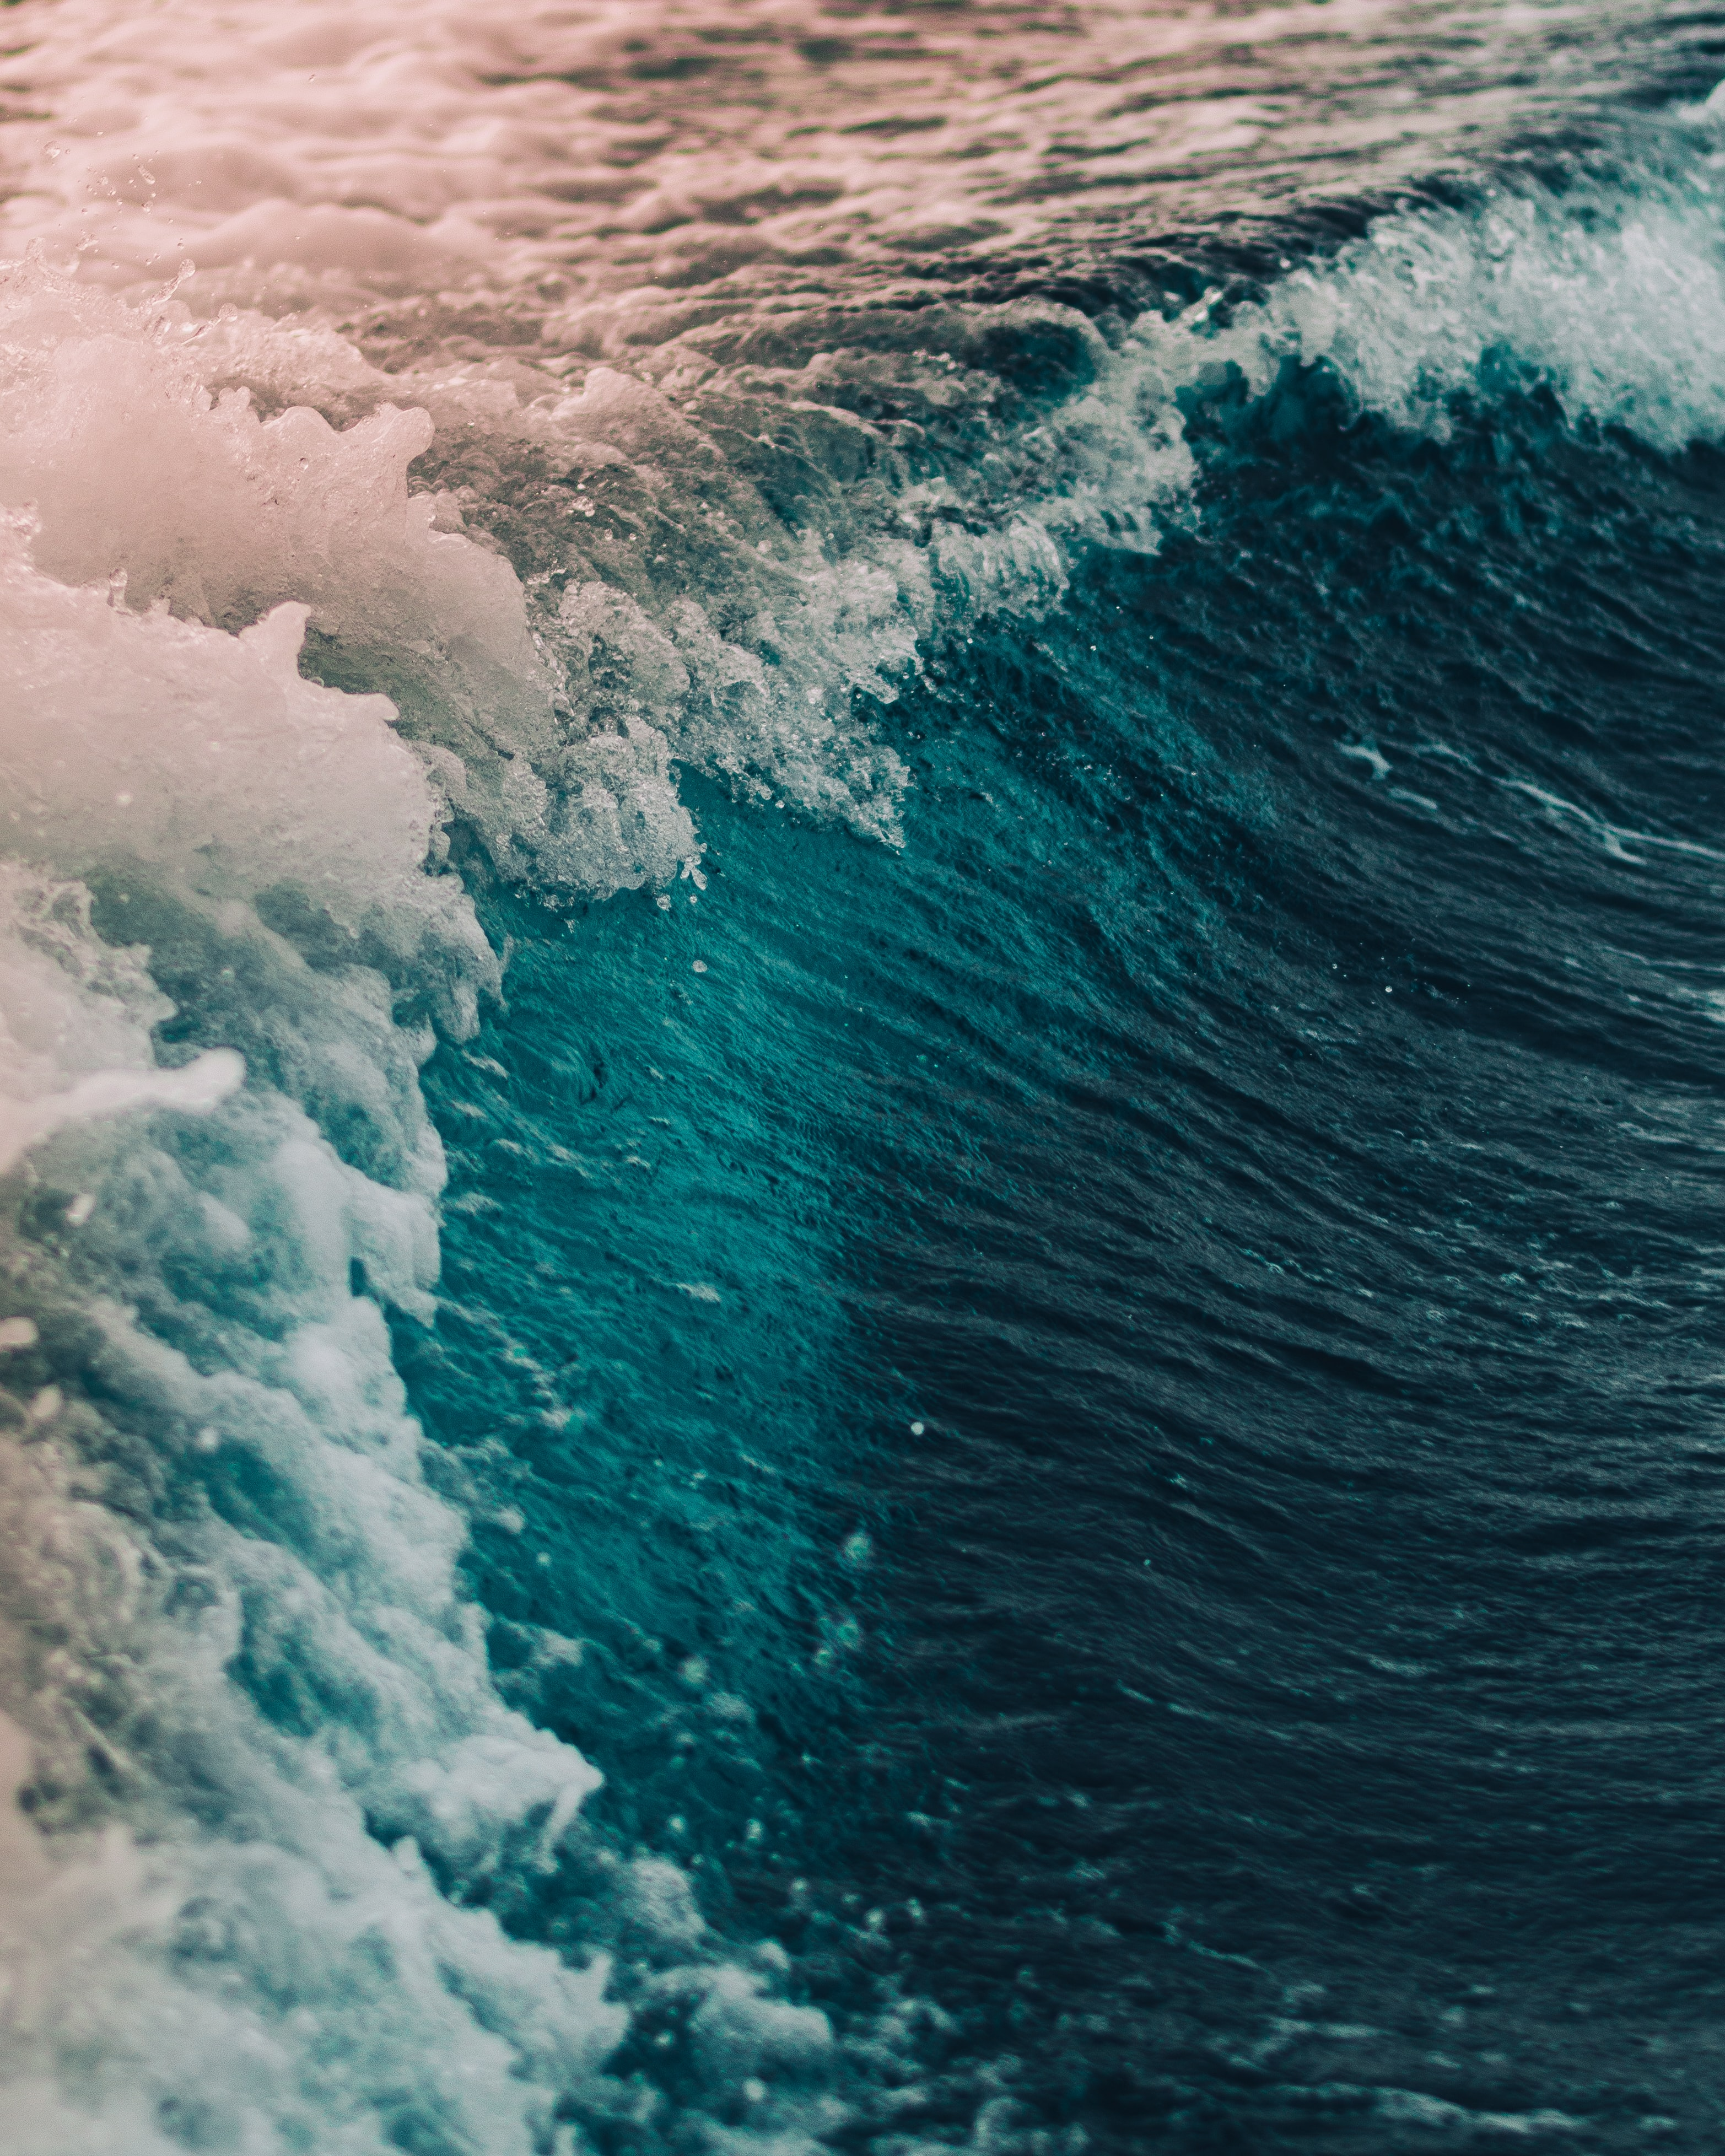 close-up photography of wave during day